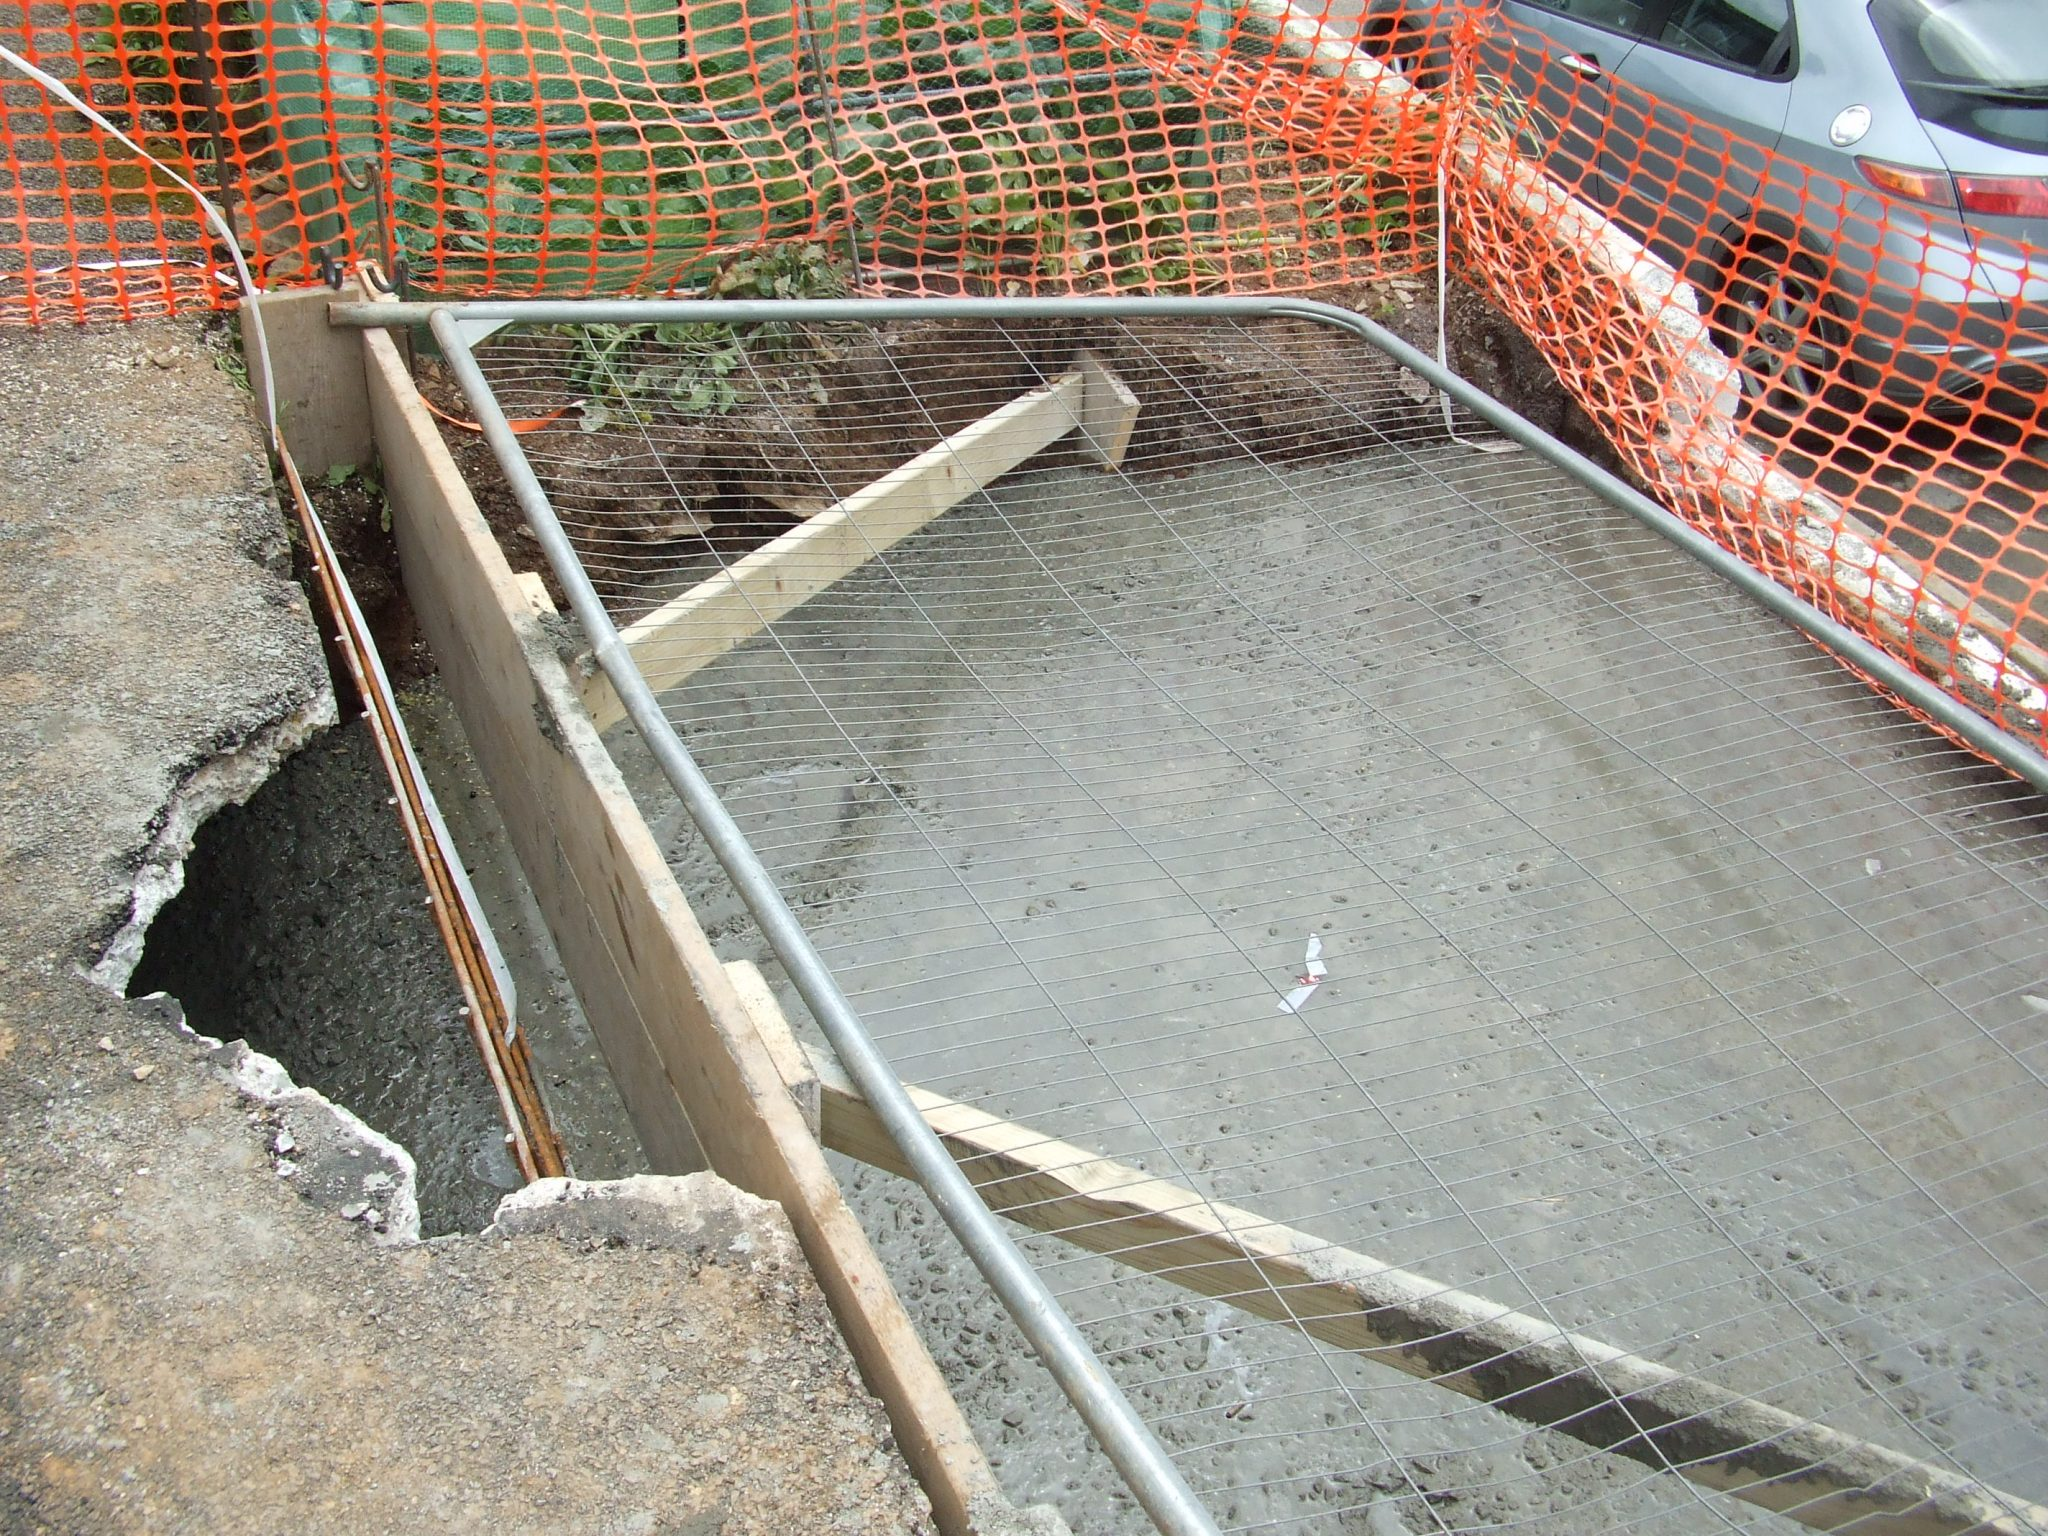 Hole filled with concrete.